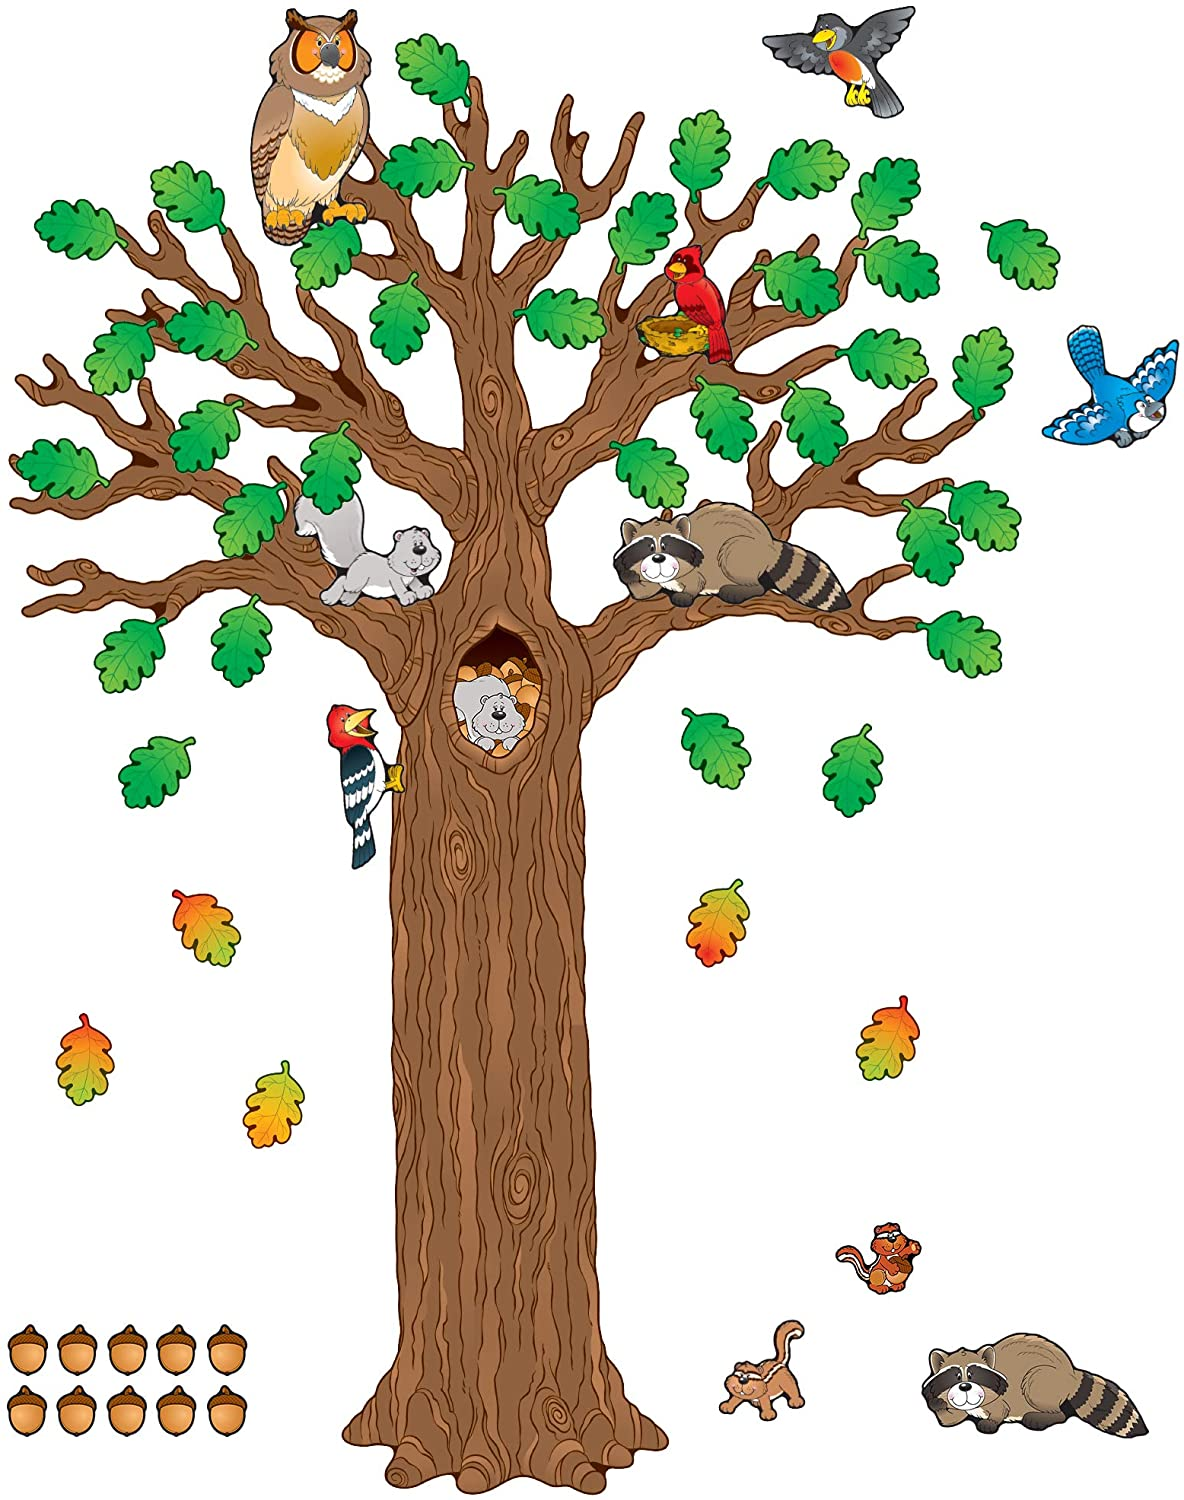 Amazon Com Carson Dellosa Woodland Bulletin Board Set Seasonal Tree Cutout With Forest Animals Autumn Leaves Acorns Elementary Classroom And Homeschool Decorations 120 Pc Themed Classroom Displays And Decoration Office Products